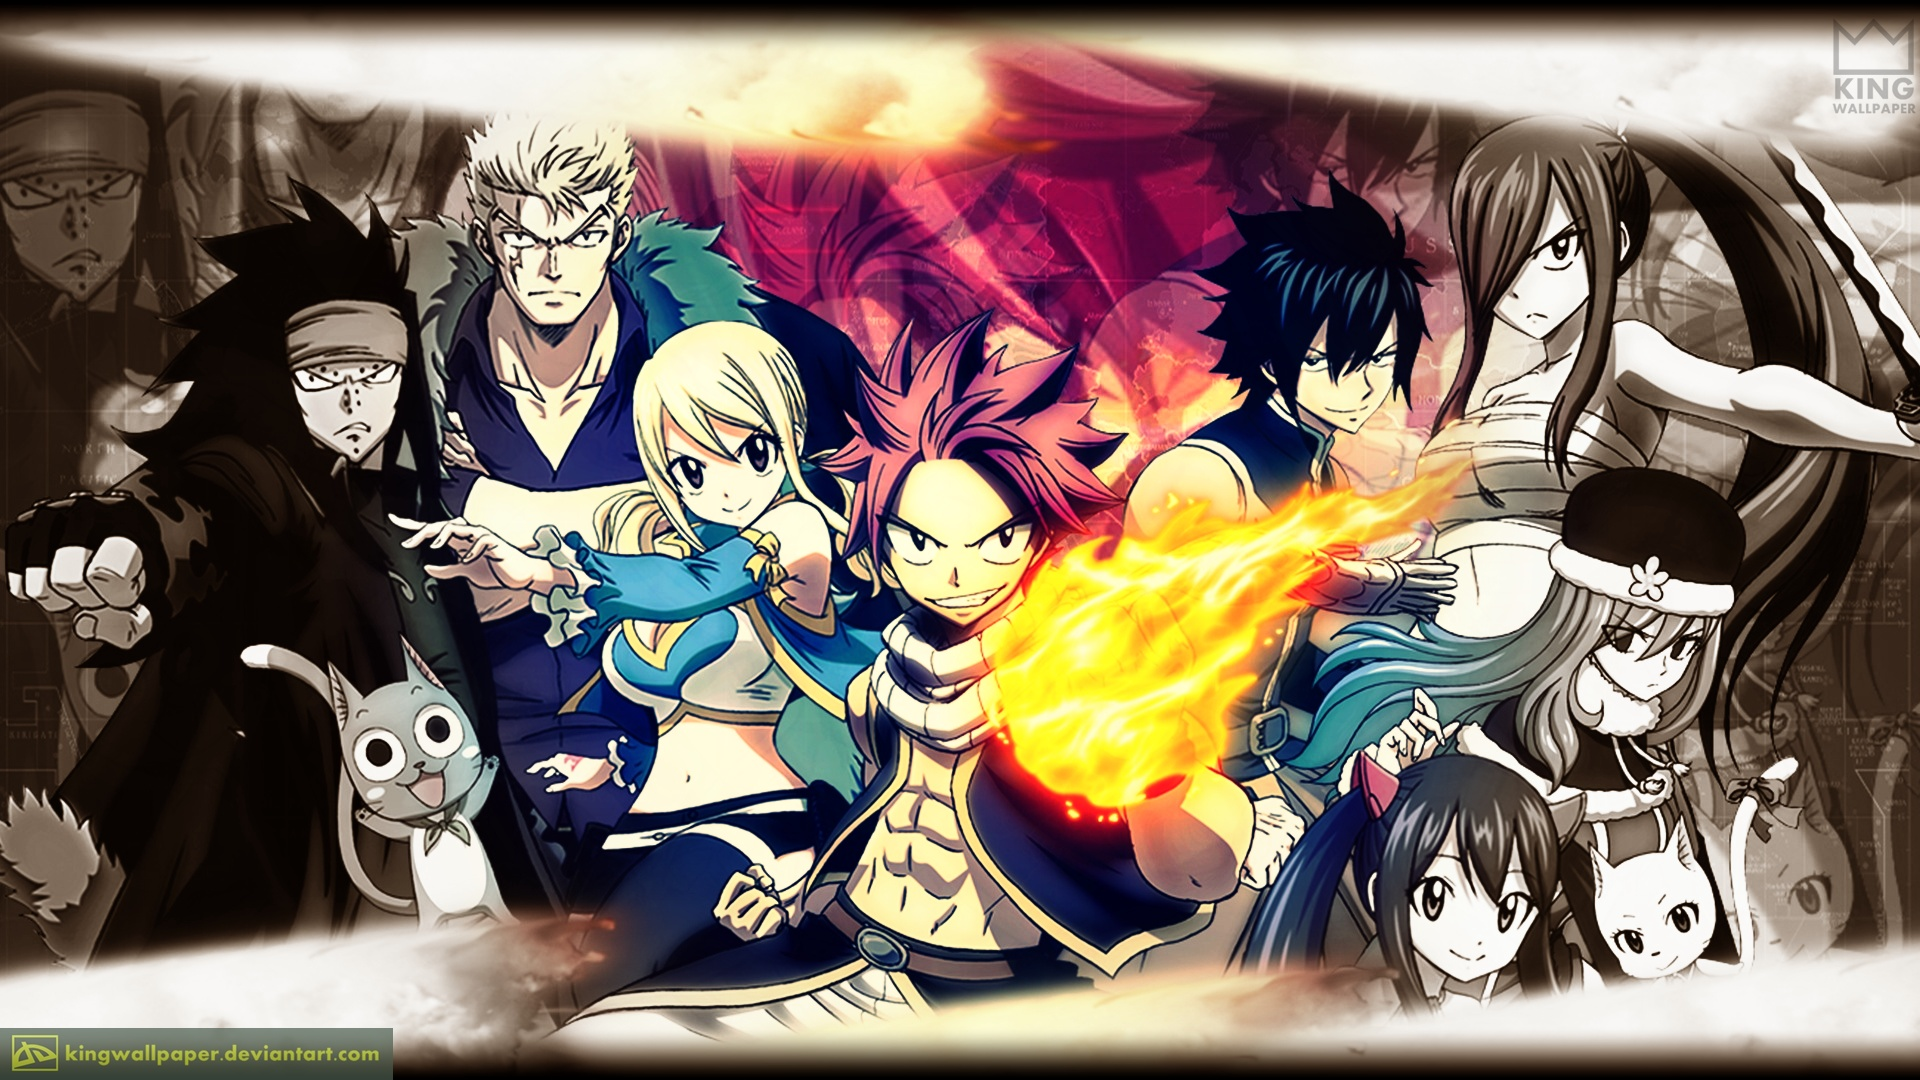 Fairy Tail Computer Wallpapers, Desktop Backgrounds   1920x1080